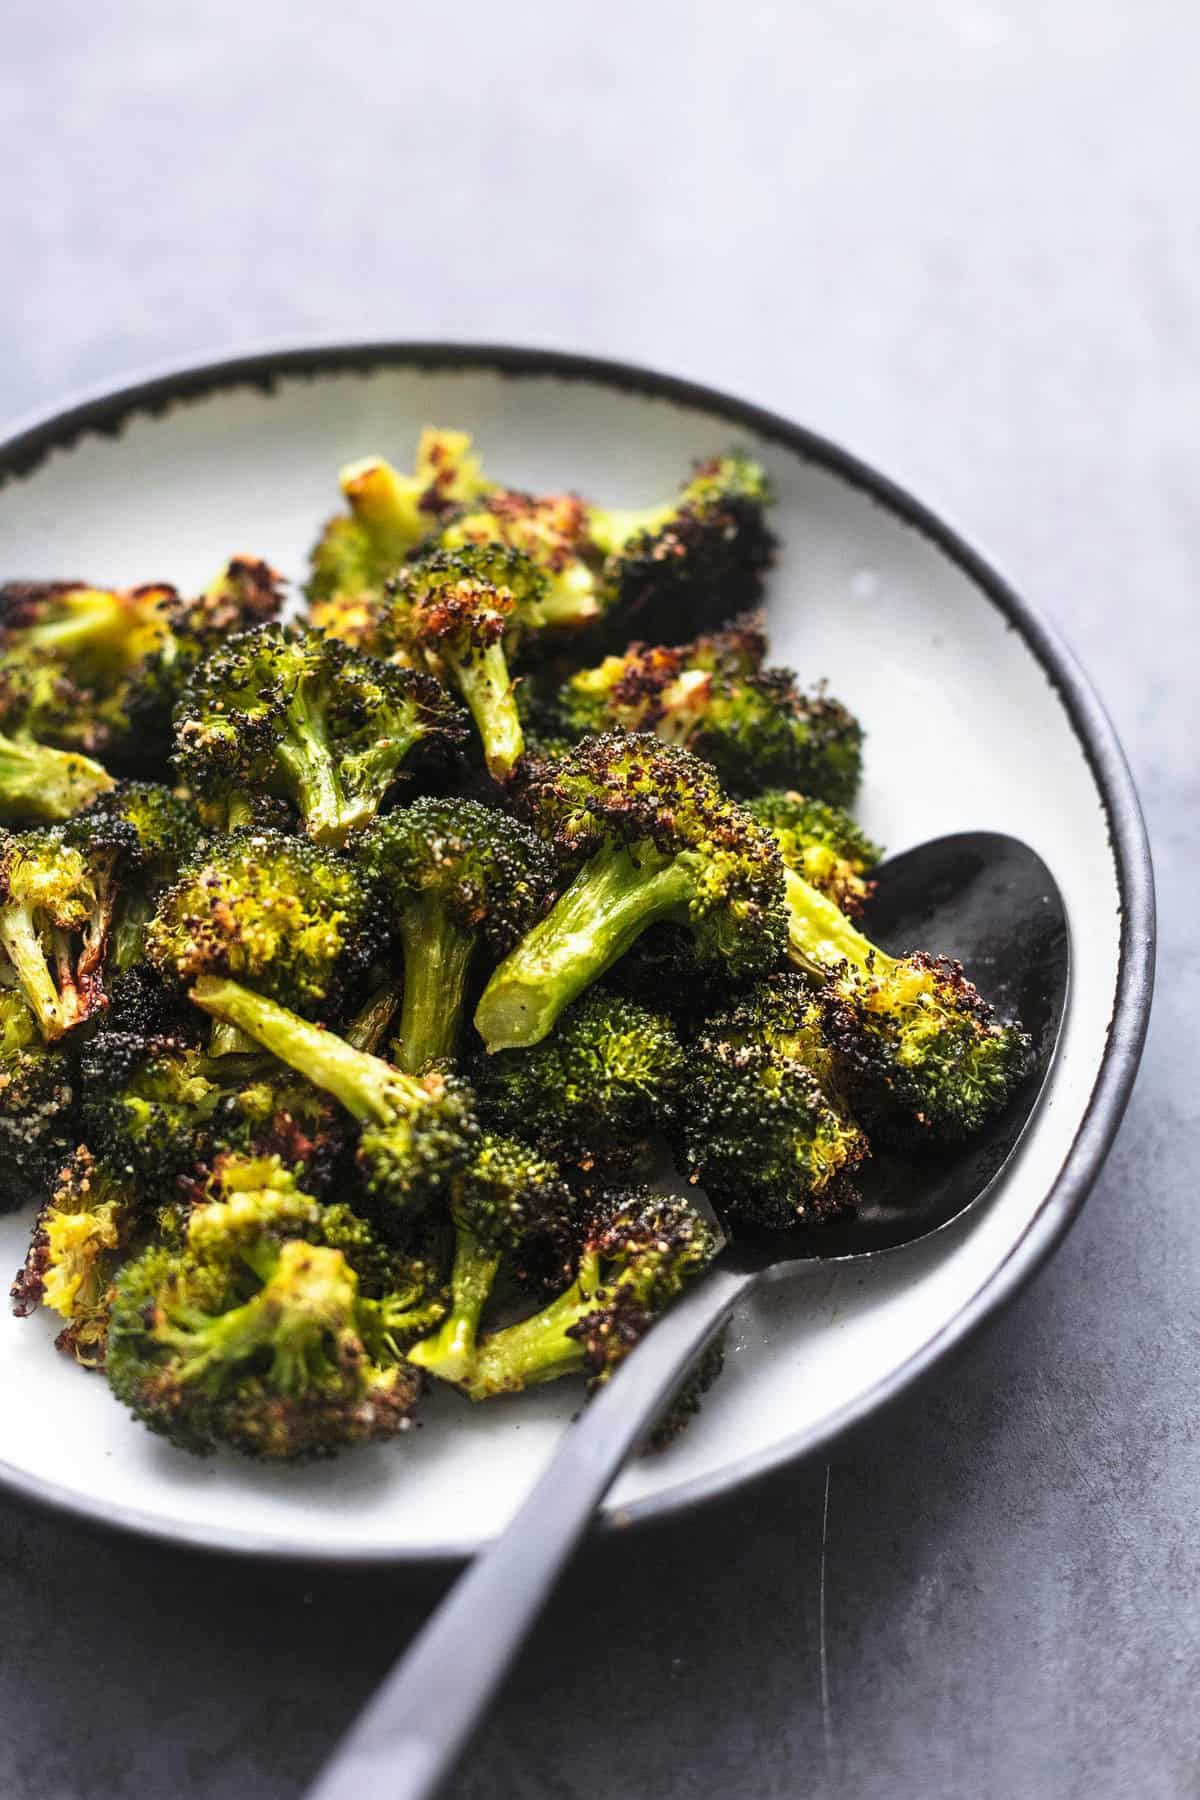 Easy tasty and healthy ROASTED BROCCOLI side dish recipe | lecremedelacrumb.com